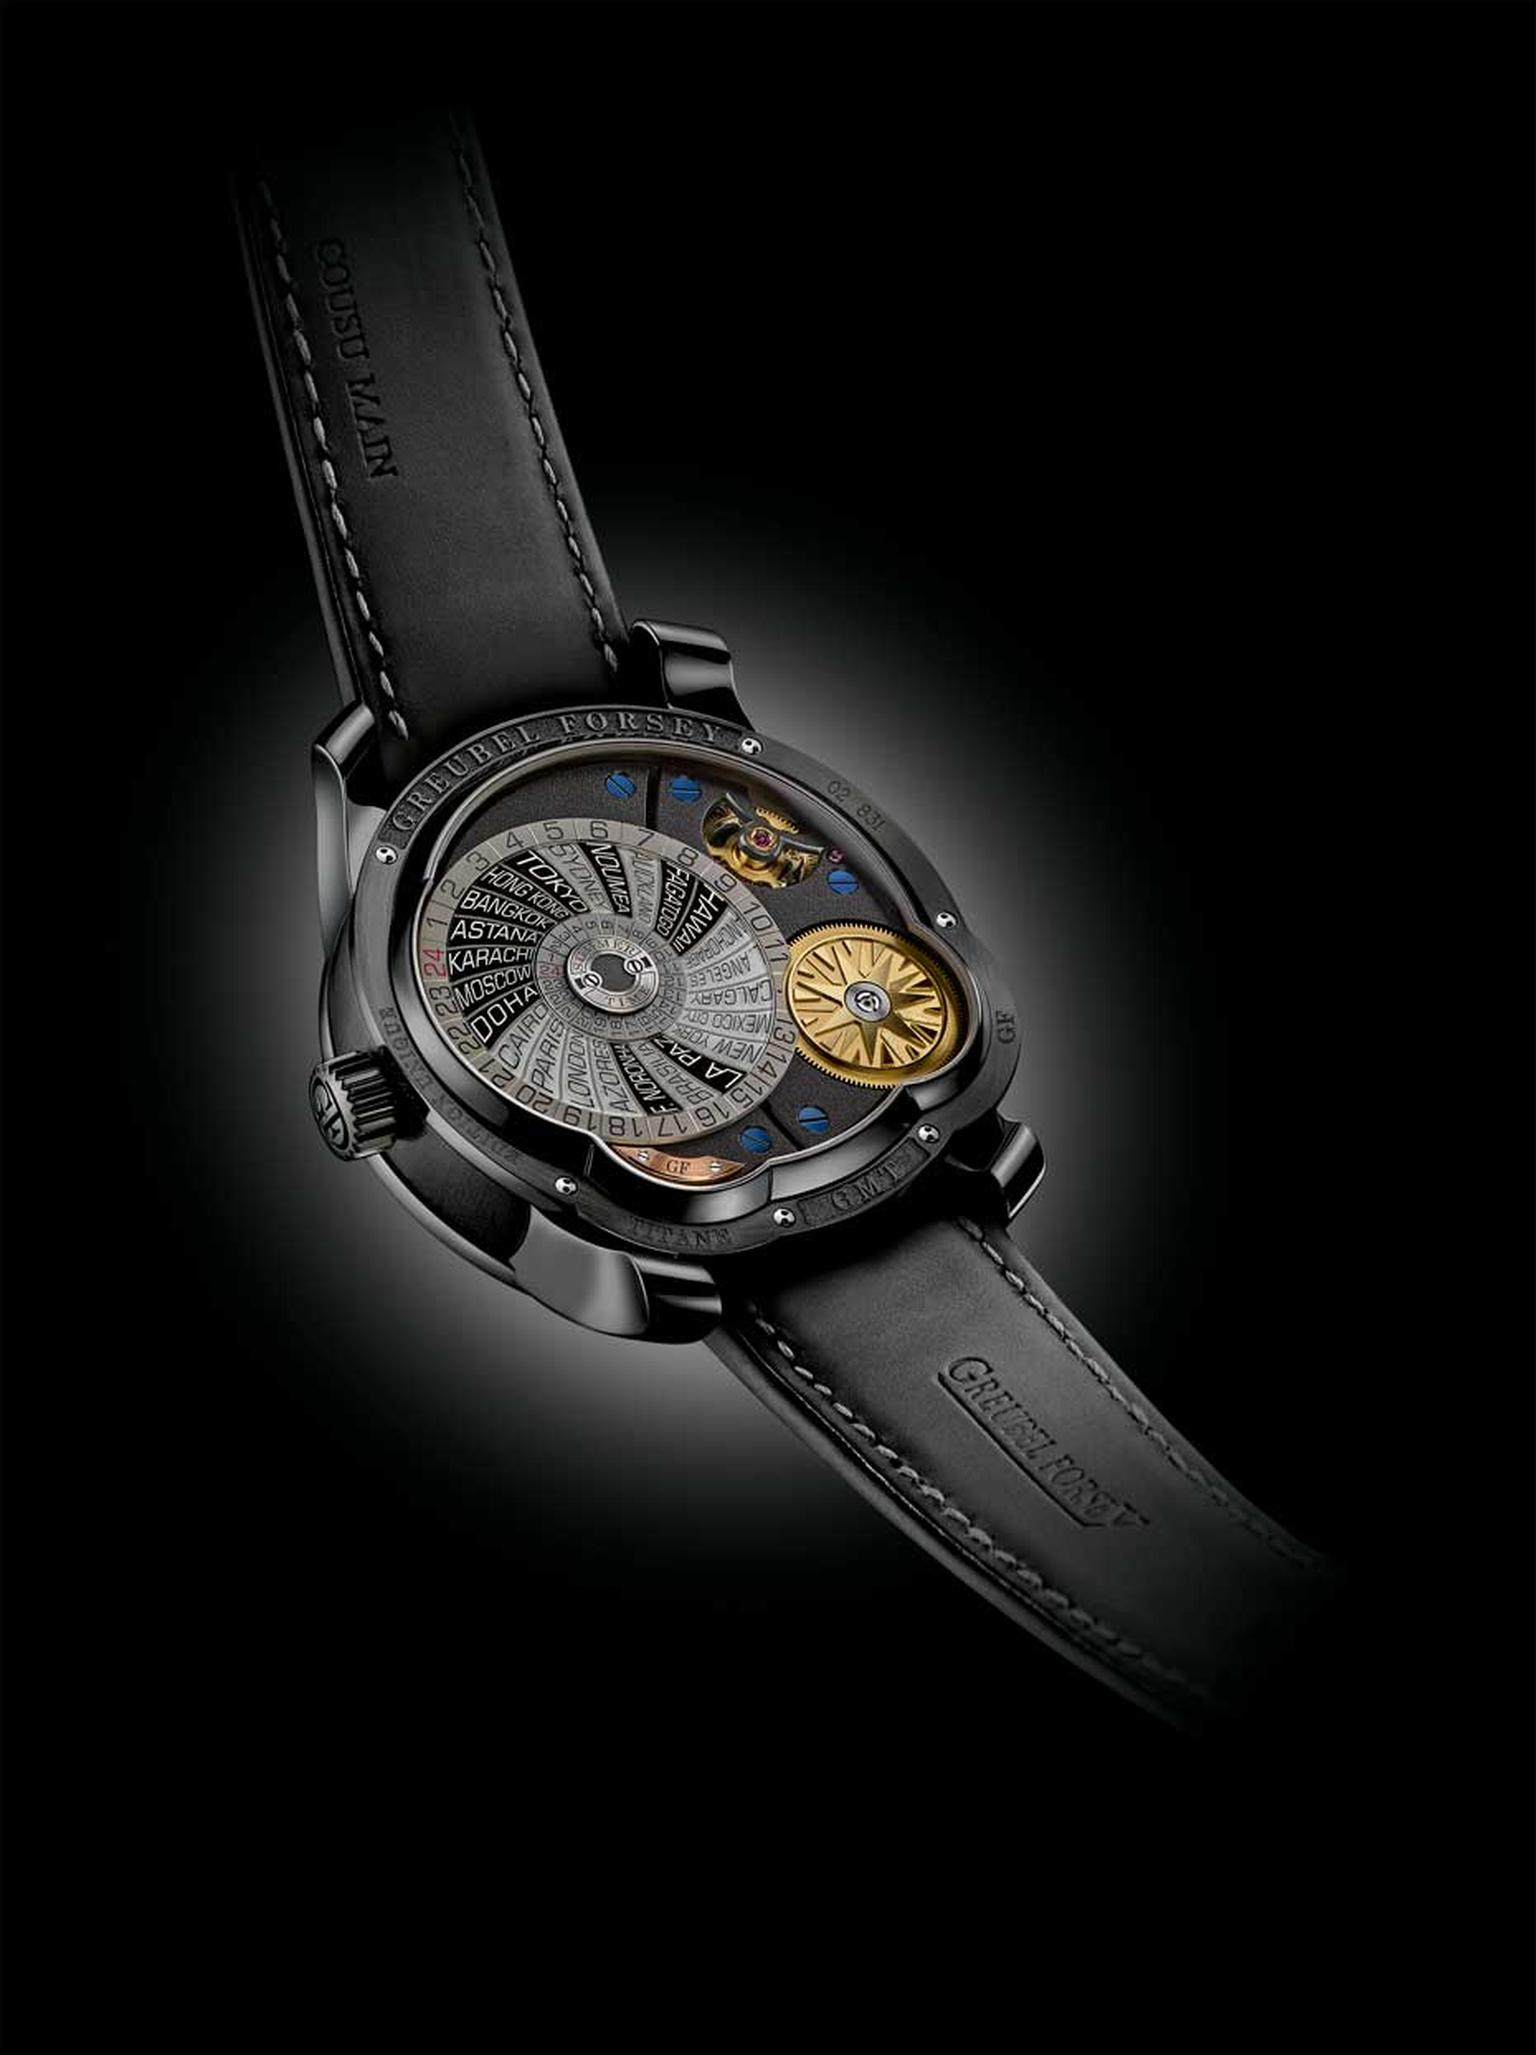 Greubel Forsey GMT watch features the name of 24 cities on a world time disc on the caseback, which protects the incredibly complex movement. This GMT model is limited to 22 watches.